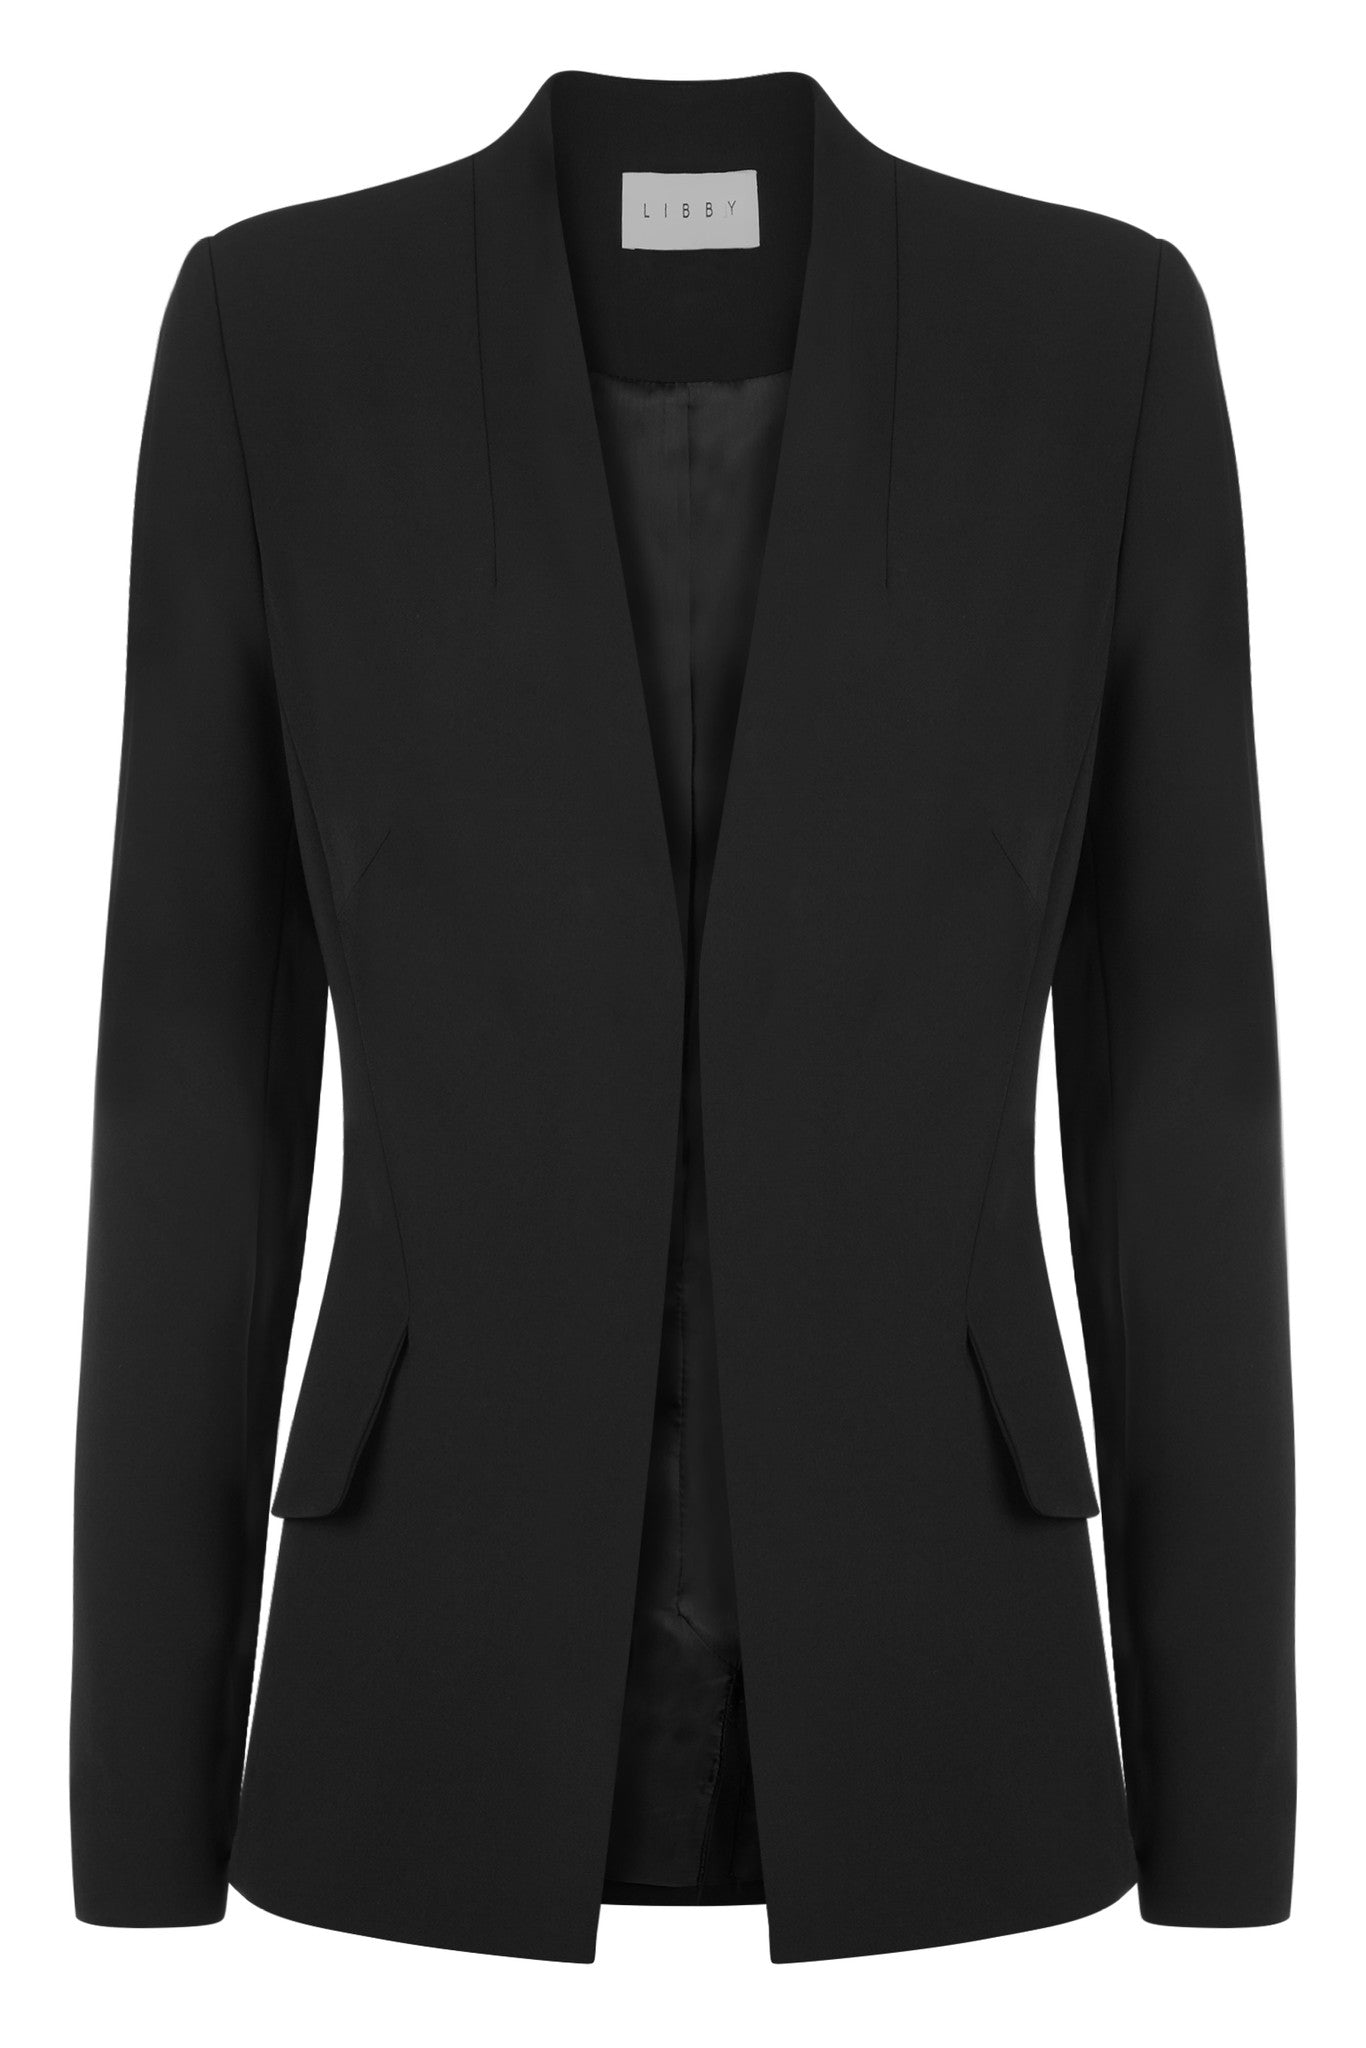 Westminster Black Suiting Jacket